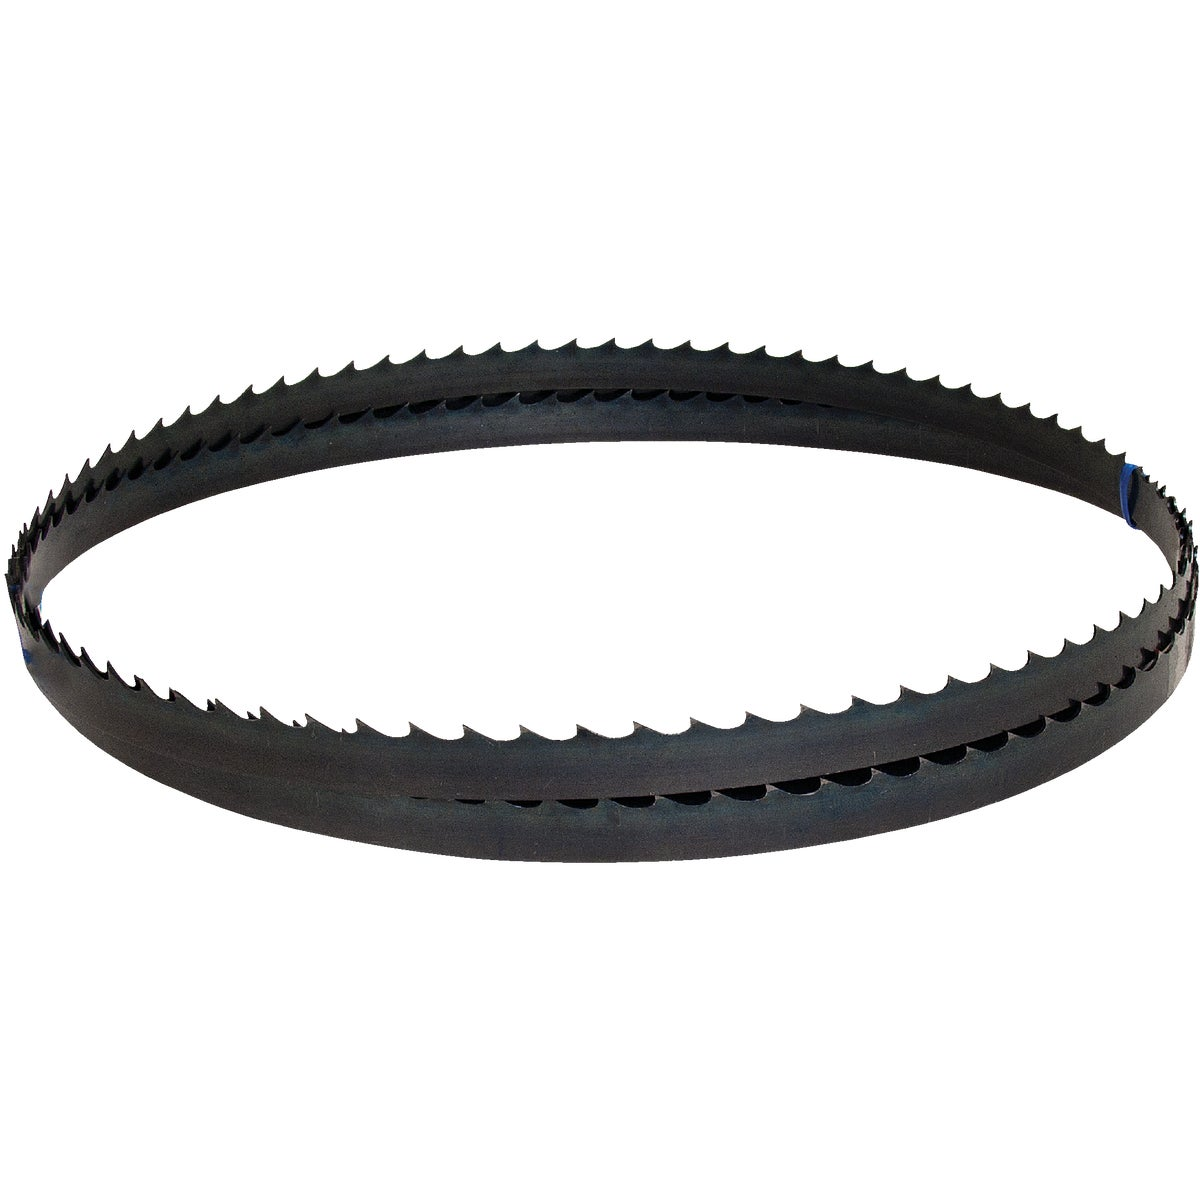 "80"" BANDSAW BLADE - 23180 by Olson Saw Co"